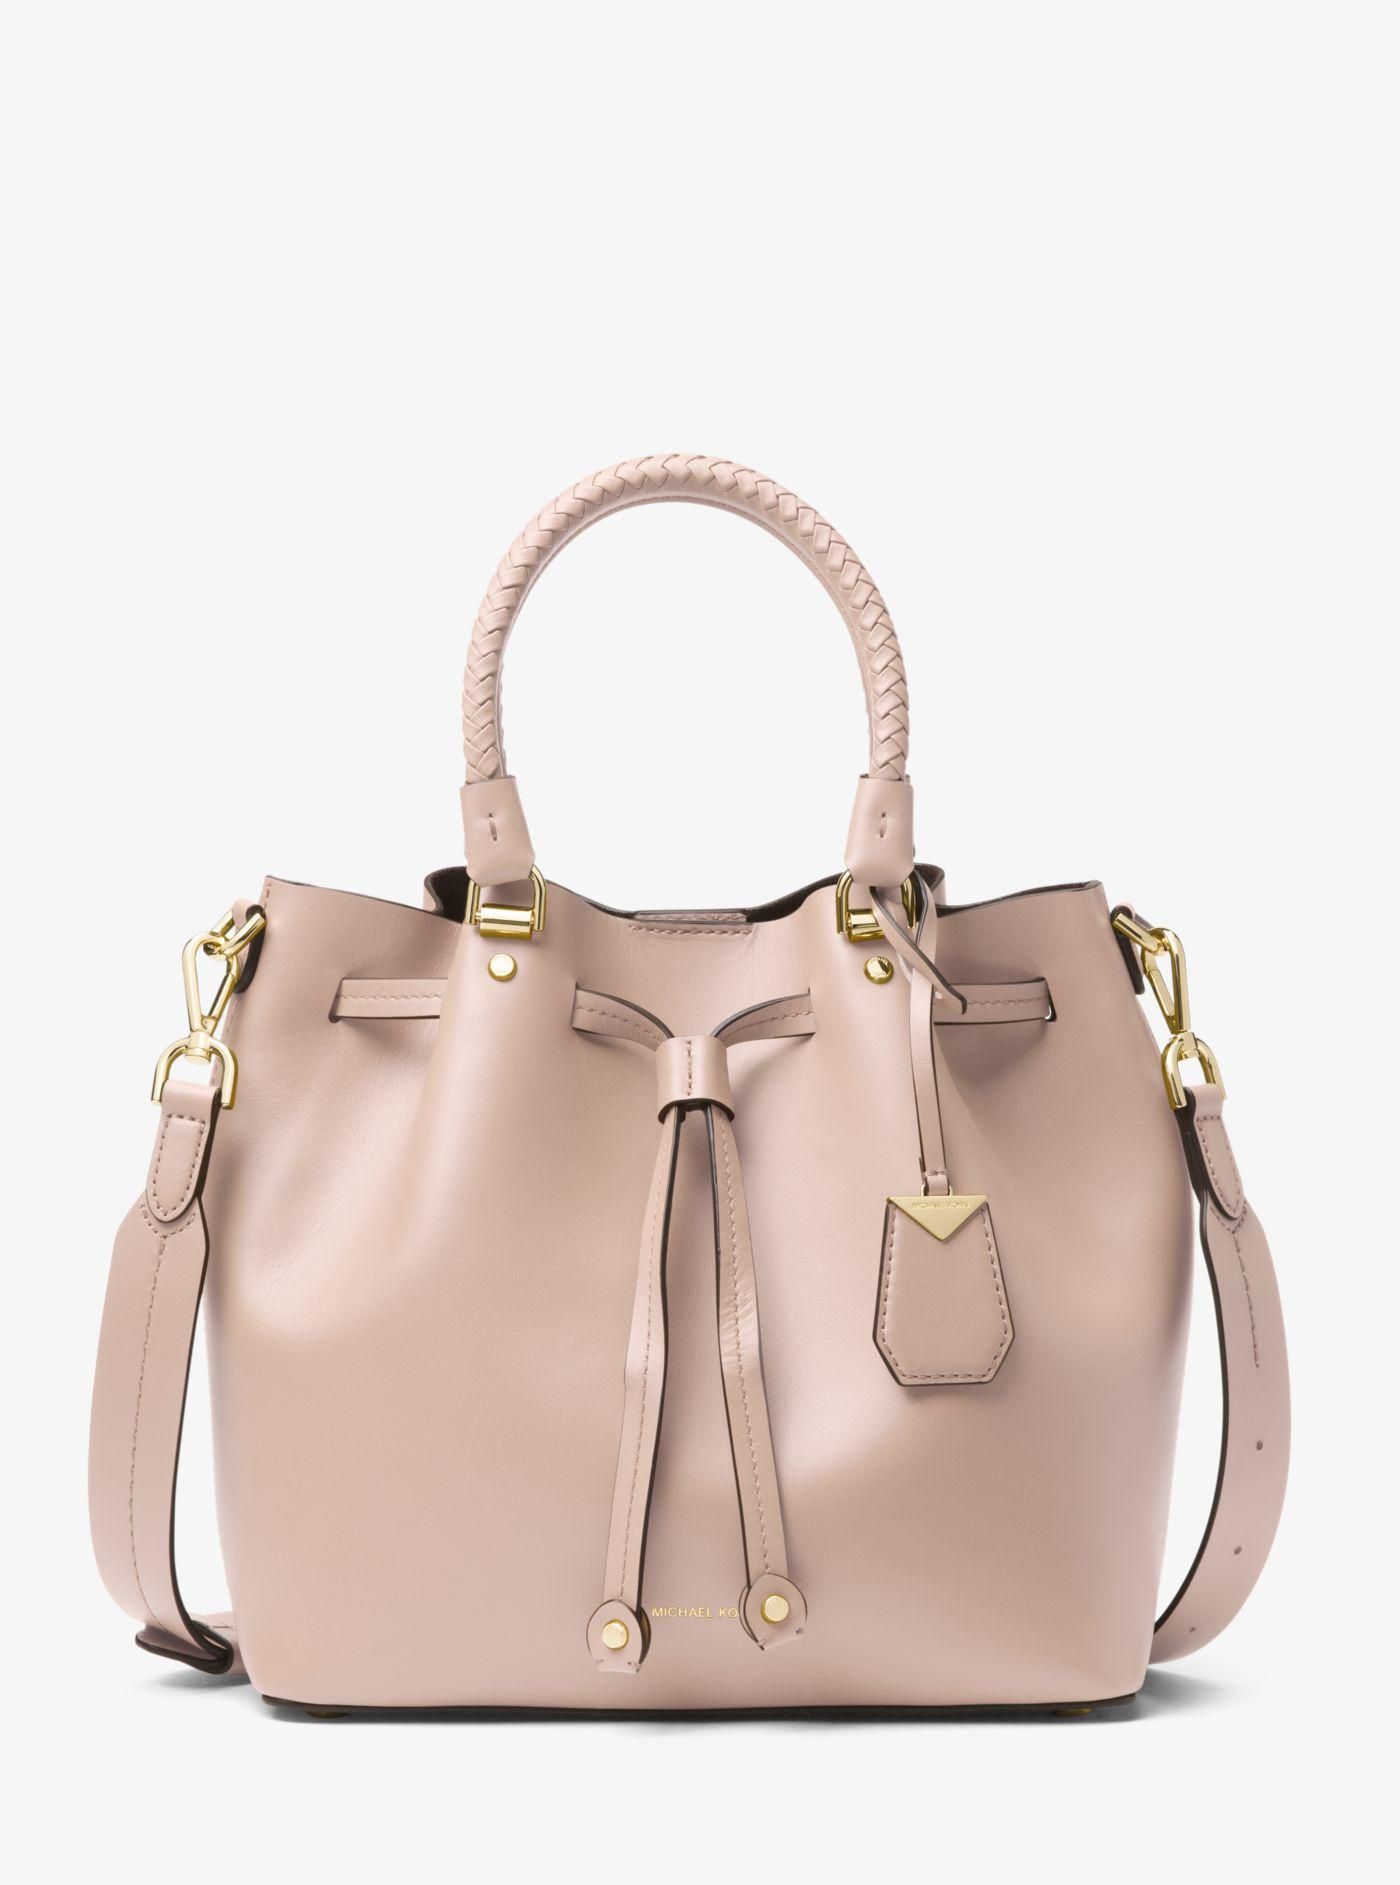 ... discount lyst michael kors blakely leather bucket bag in pink c9846  68e45 4f12dc075febf